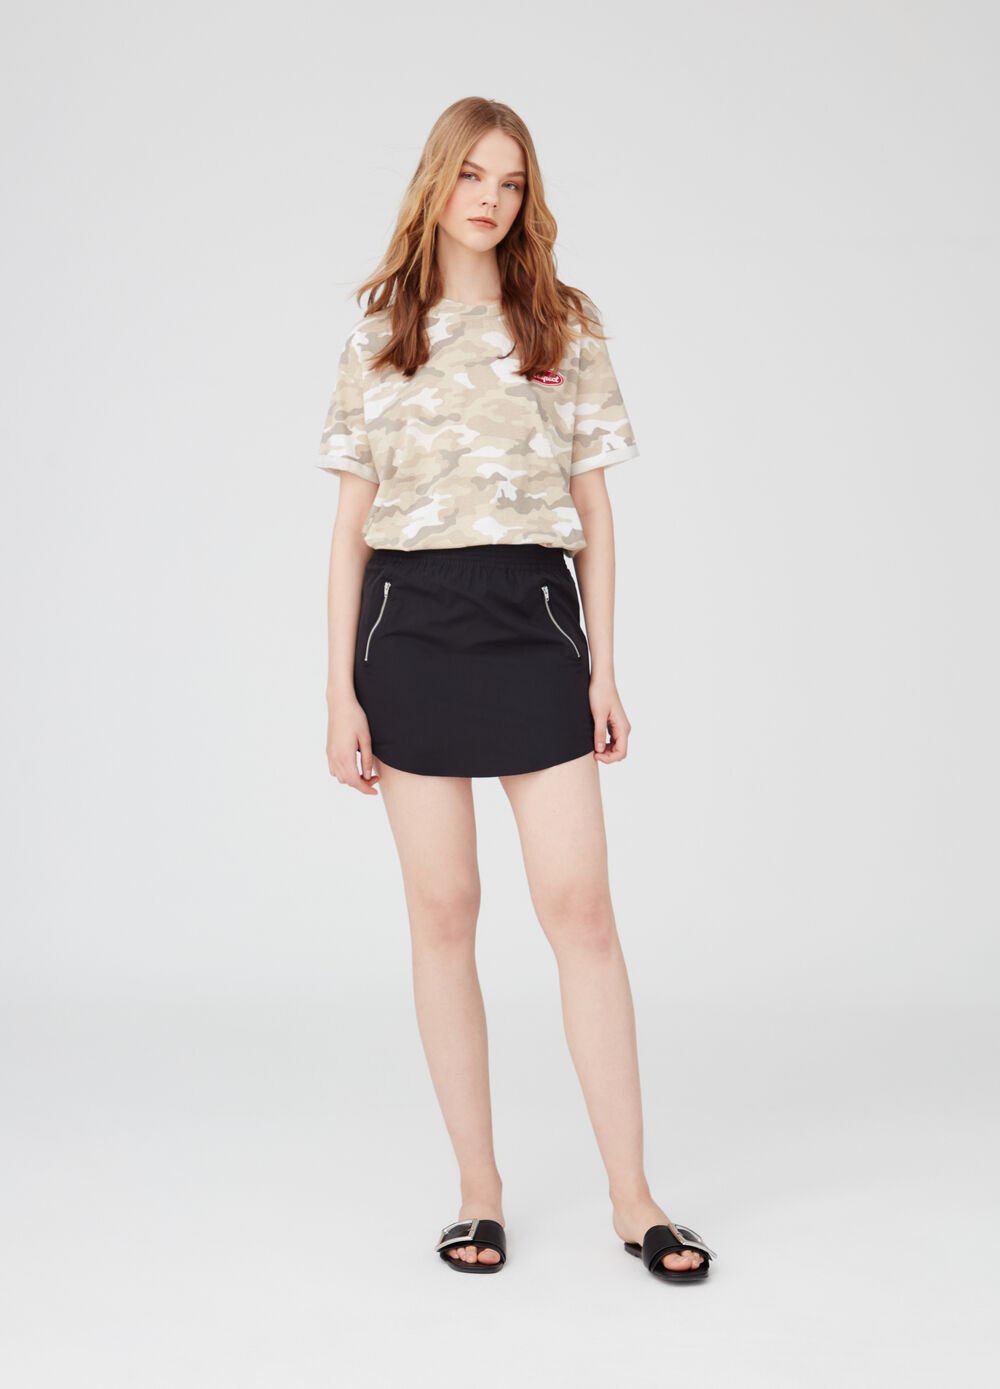 Miniskirt with elastic waist and pockets with zip